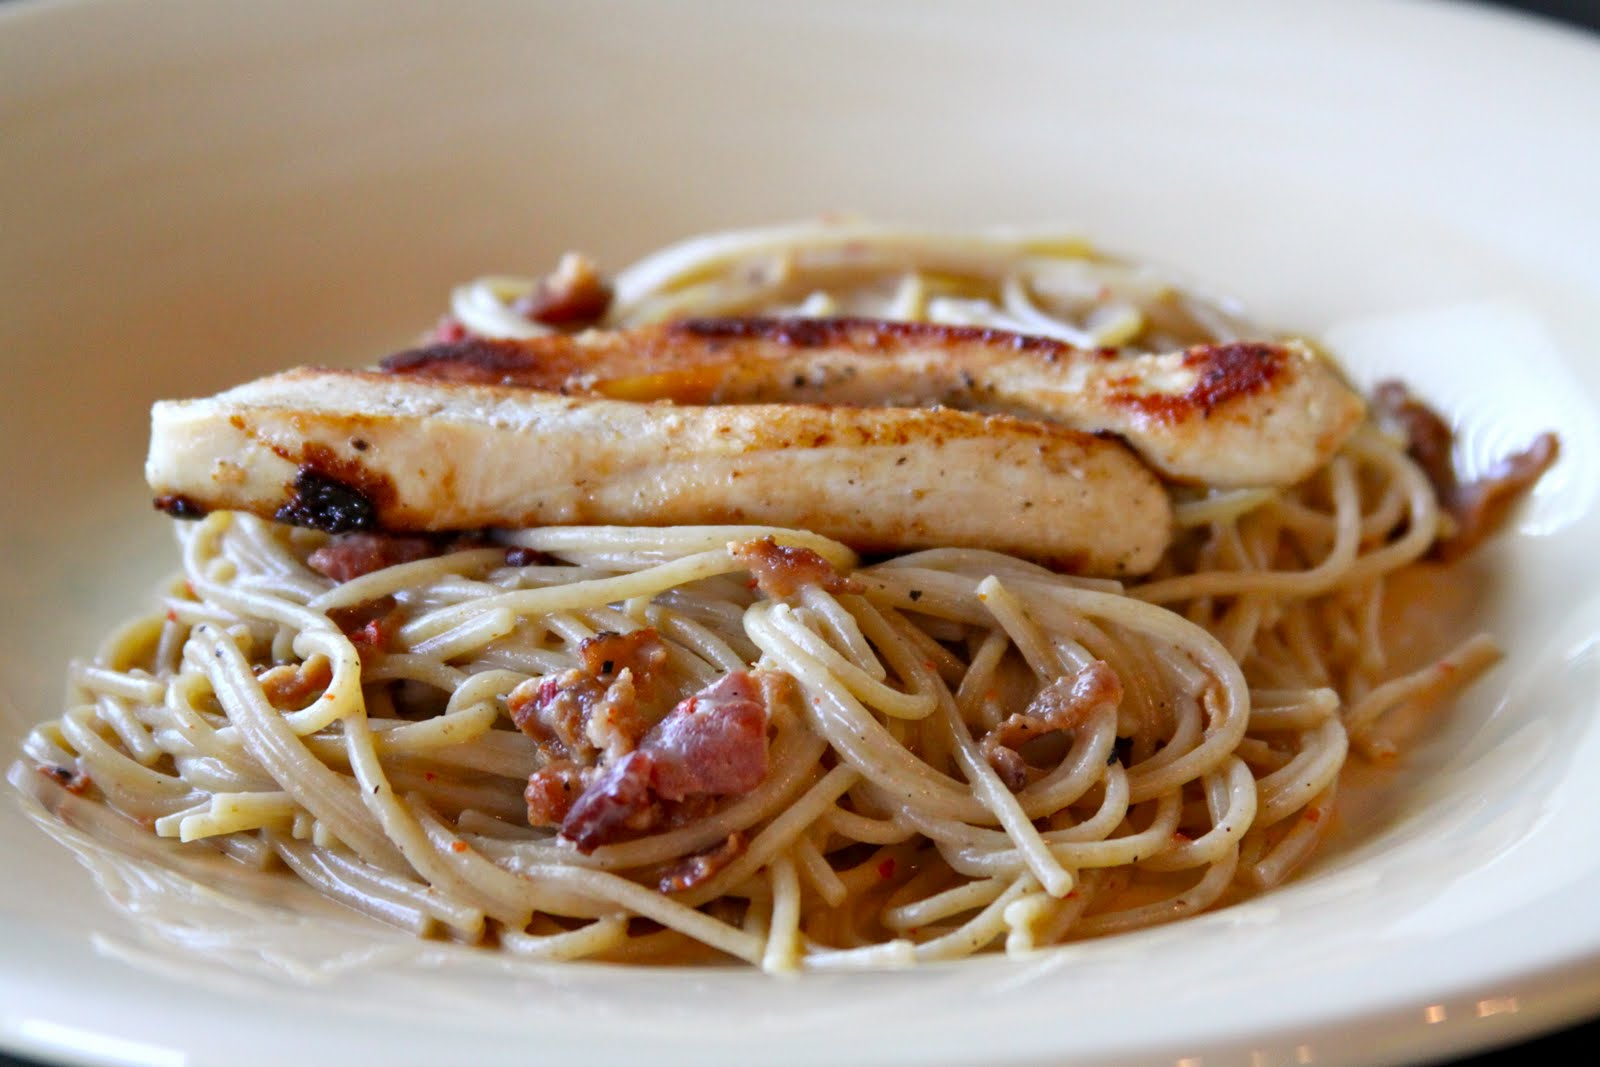 Bethenny's Low Fat Pasta Carbonara with Chicken